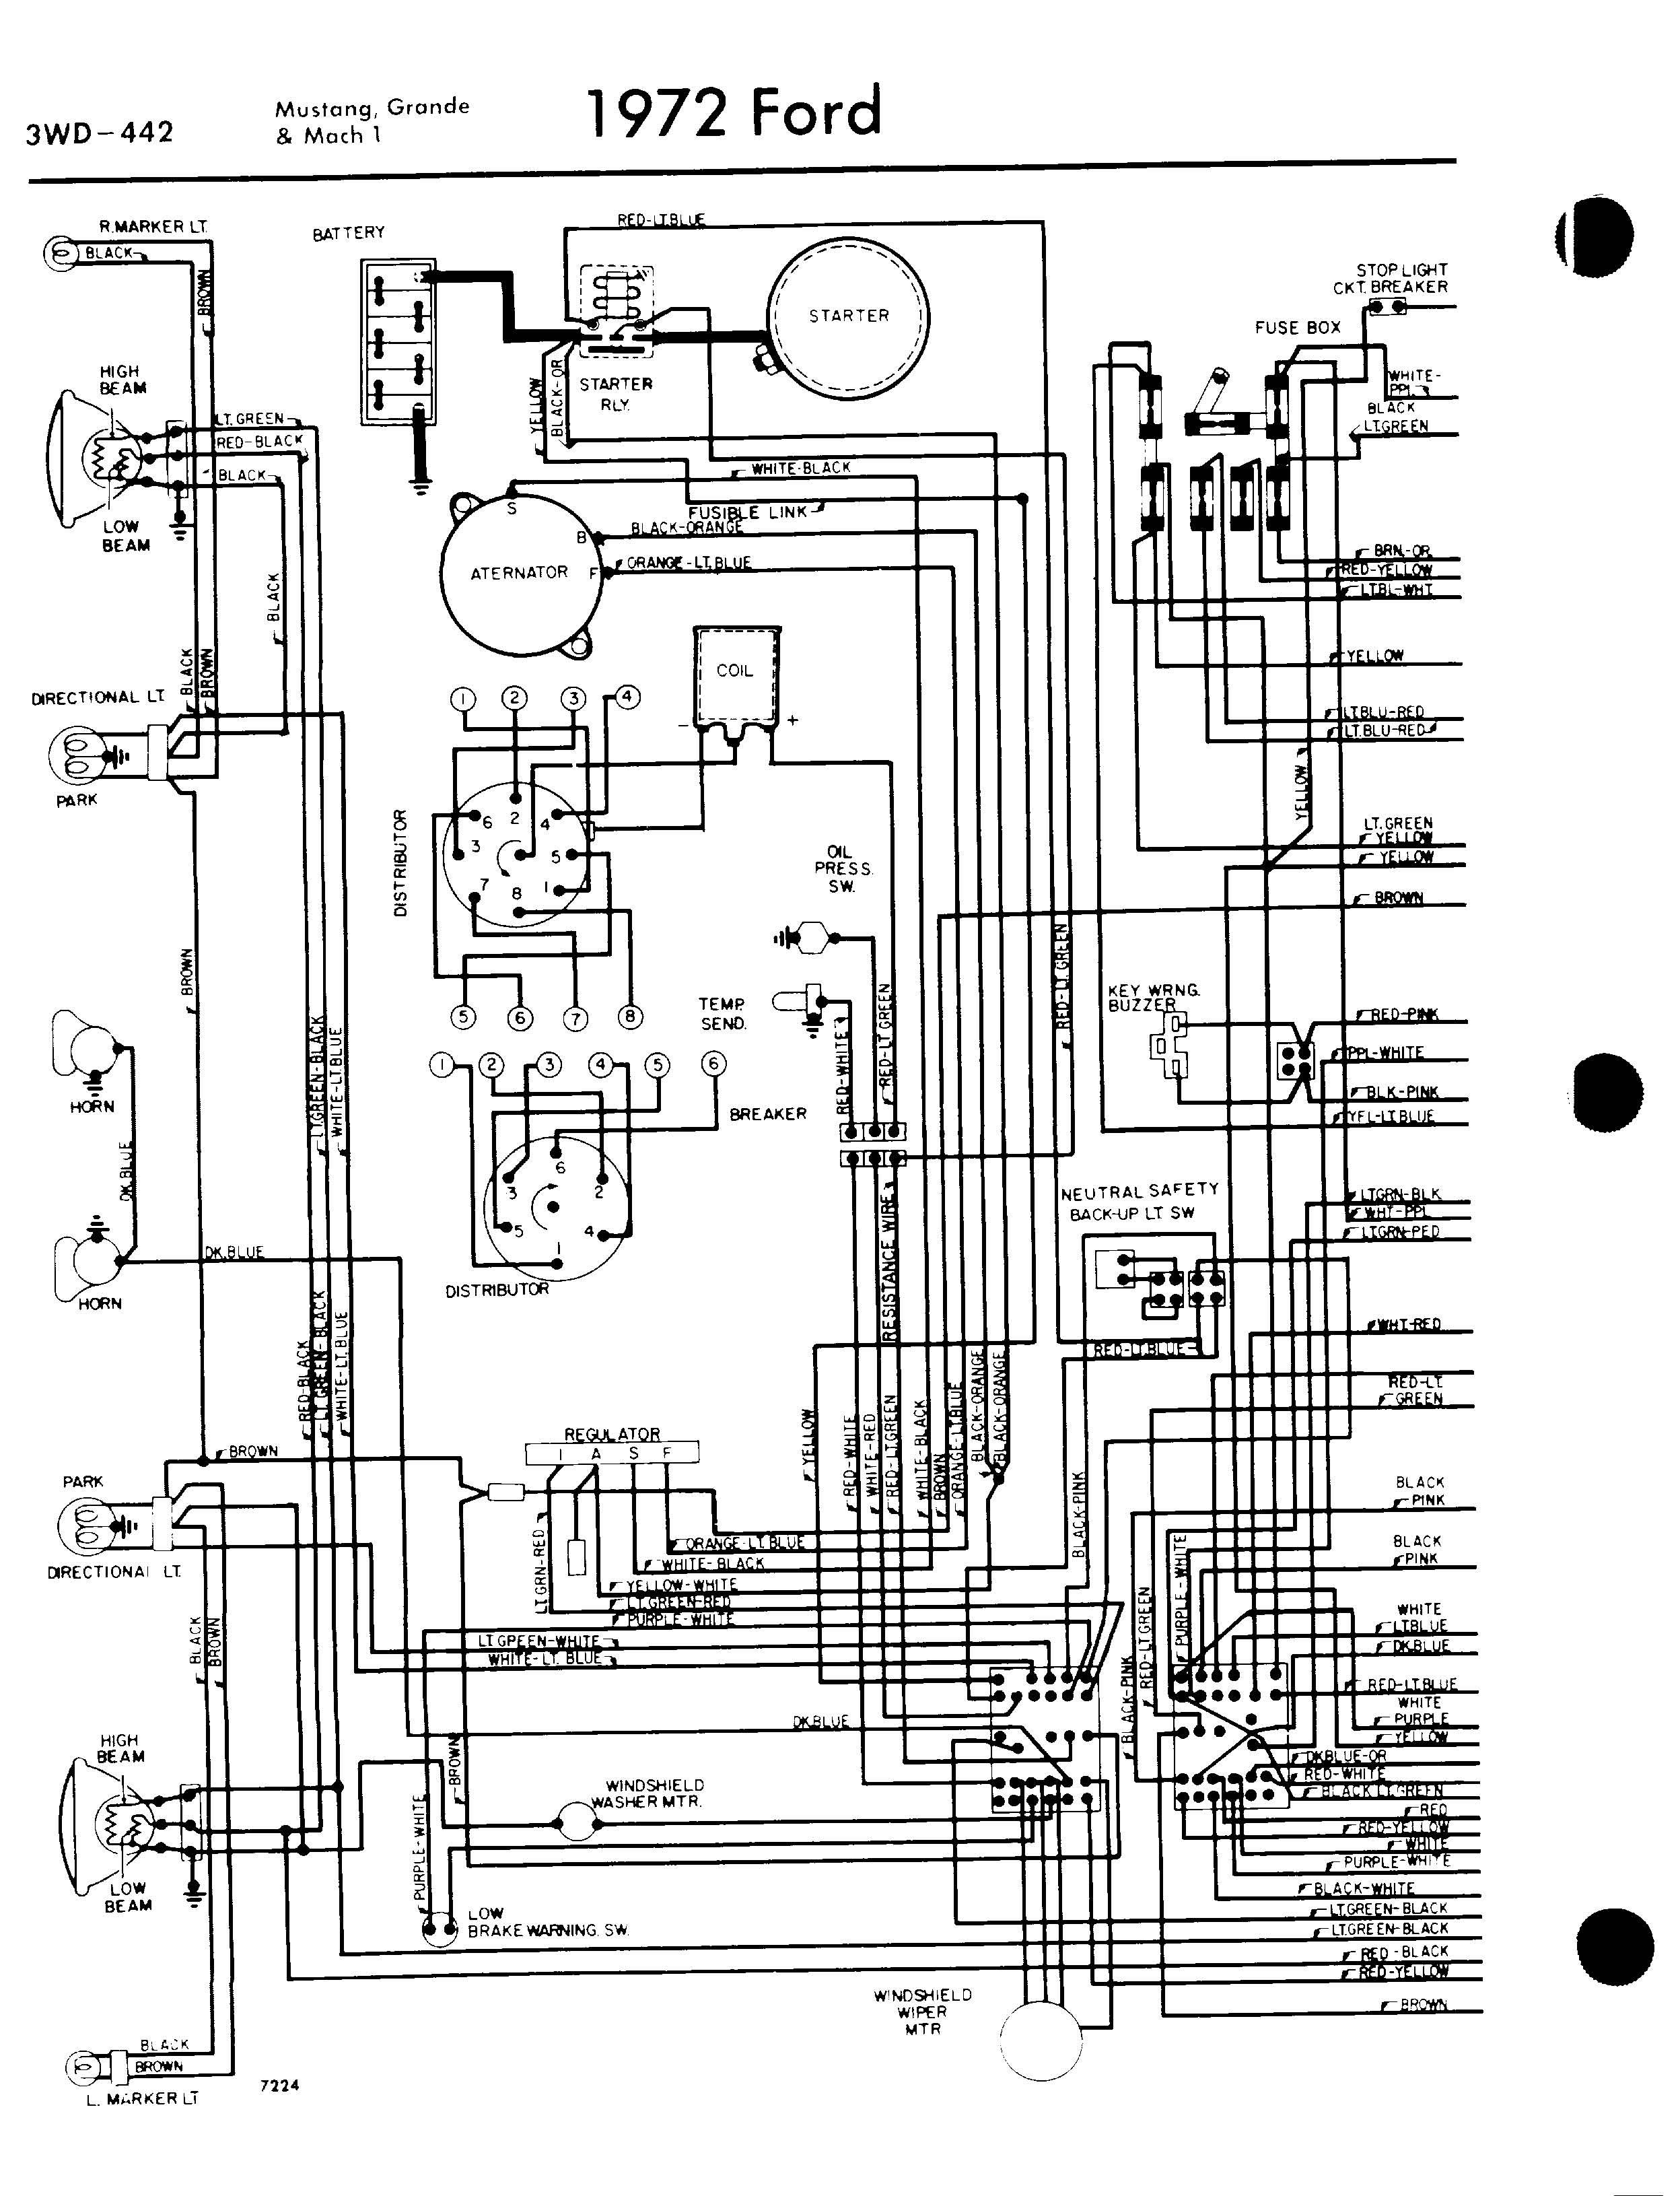 71af7a58e095e6a7716b32f1b23e8bd2 1973 chevy nova wiring diagram 1973 dodge dart wiring diagram 1970 ford mustang ignition switch wiring diagram at bayanpartner.co